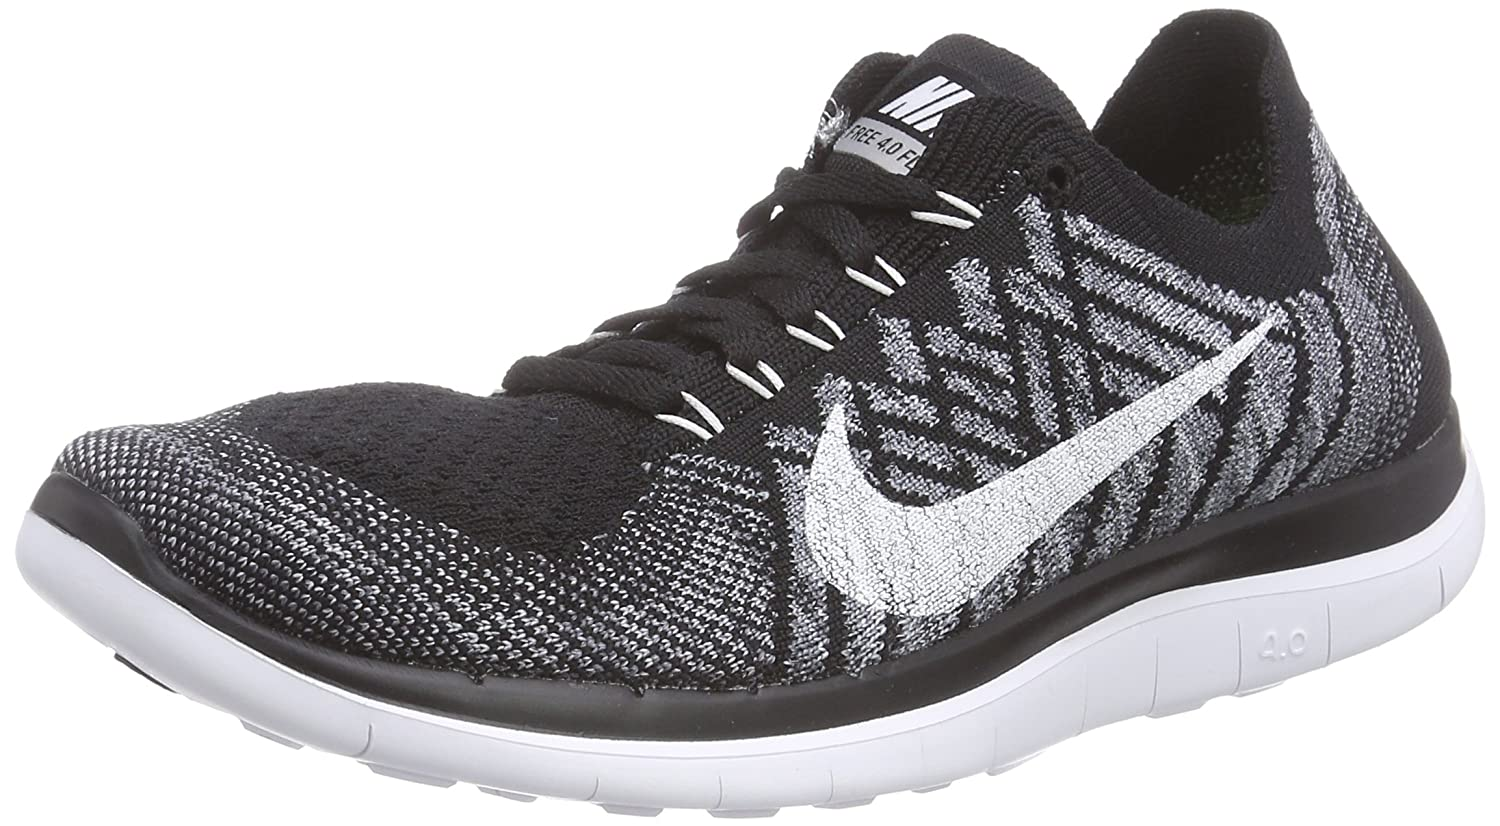 superior quality 1847f 60231 NIKE Free 4.0 Flyknit Women's Running SHOES-717076-001-SIZE ...